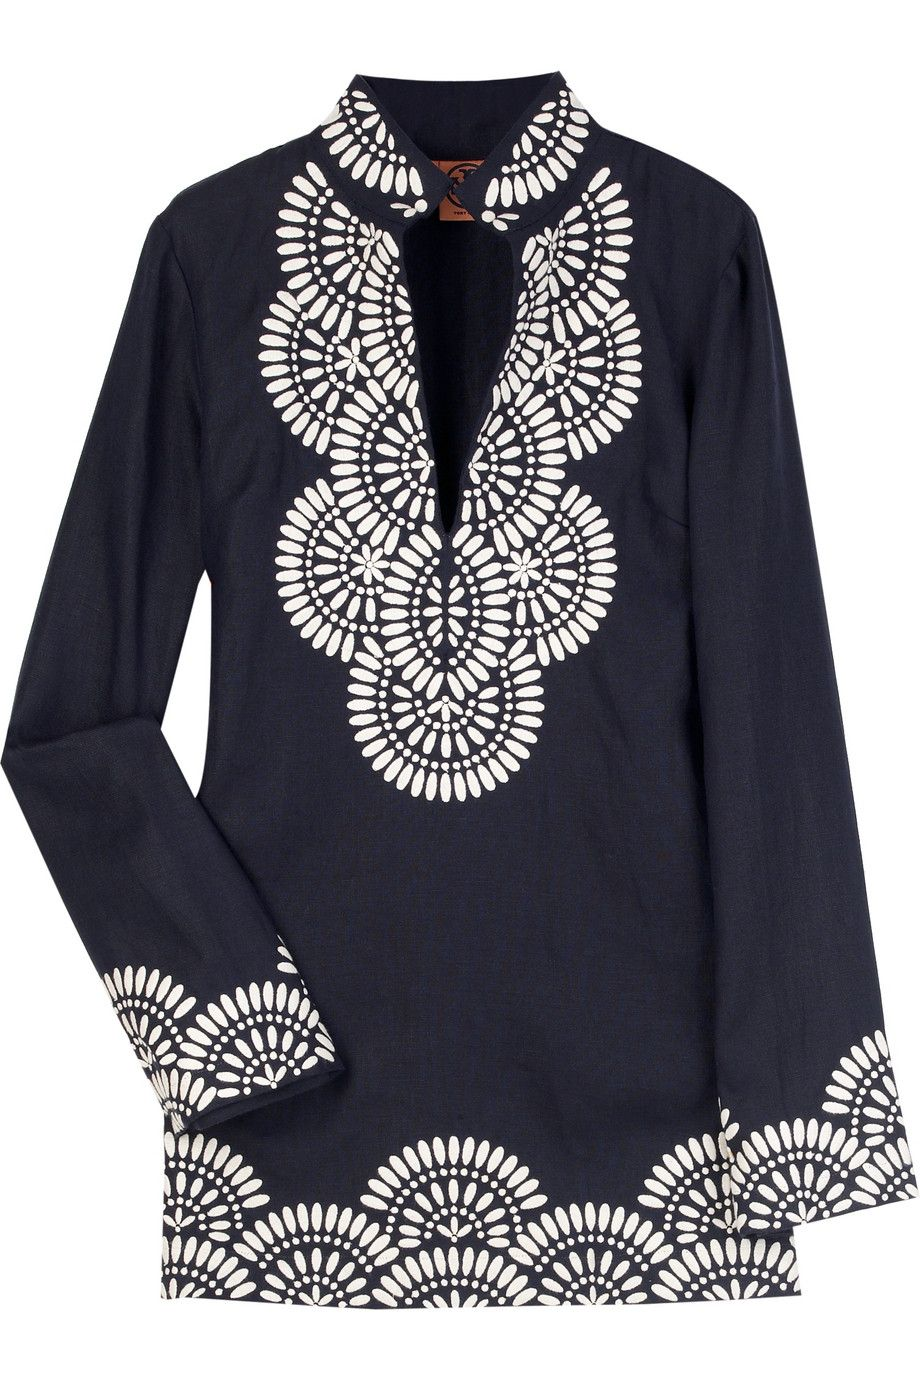 310e3d1fc38b tory burch linen tunic.  395. i ve been coveting this for a long time -  can t wait to pair with white pants